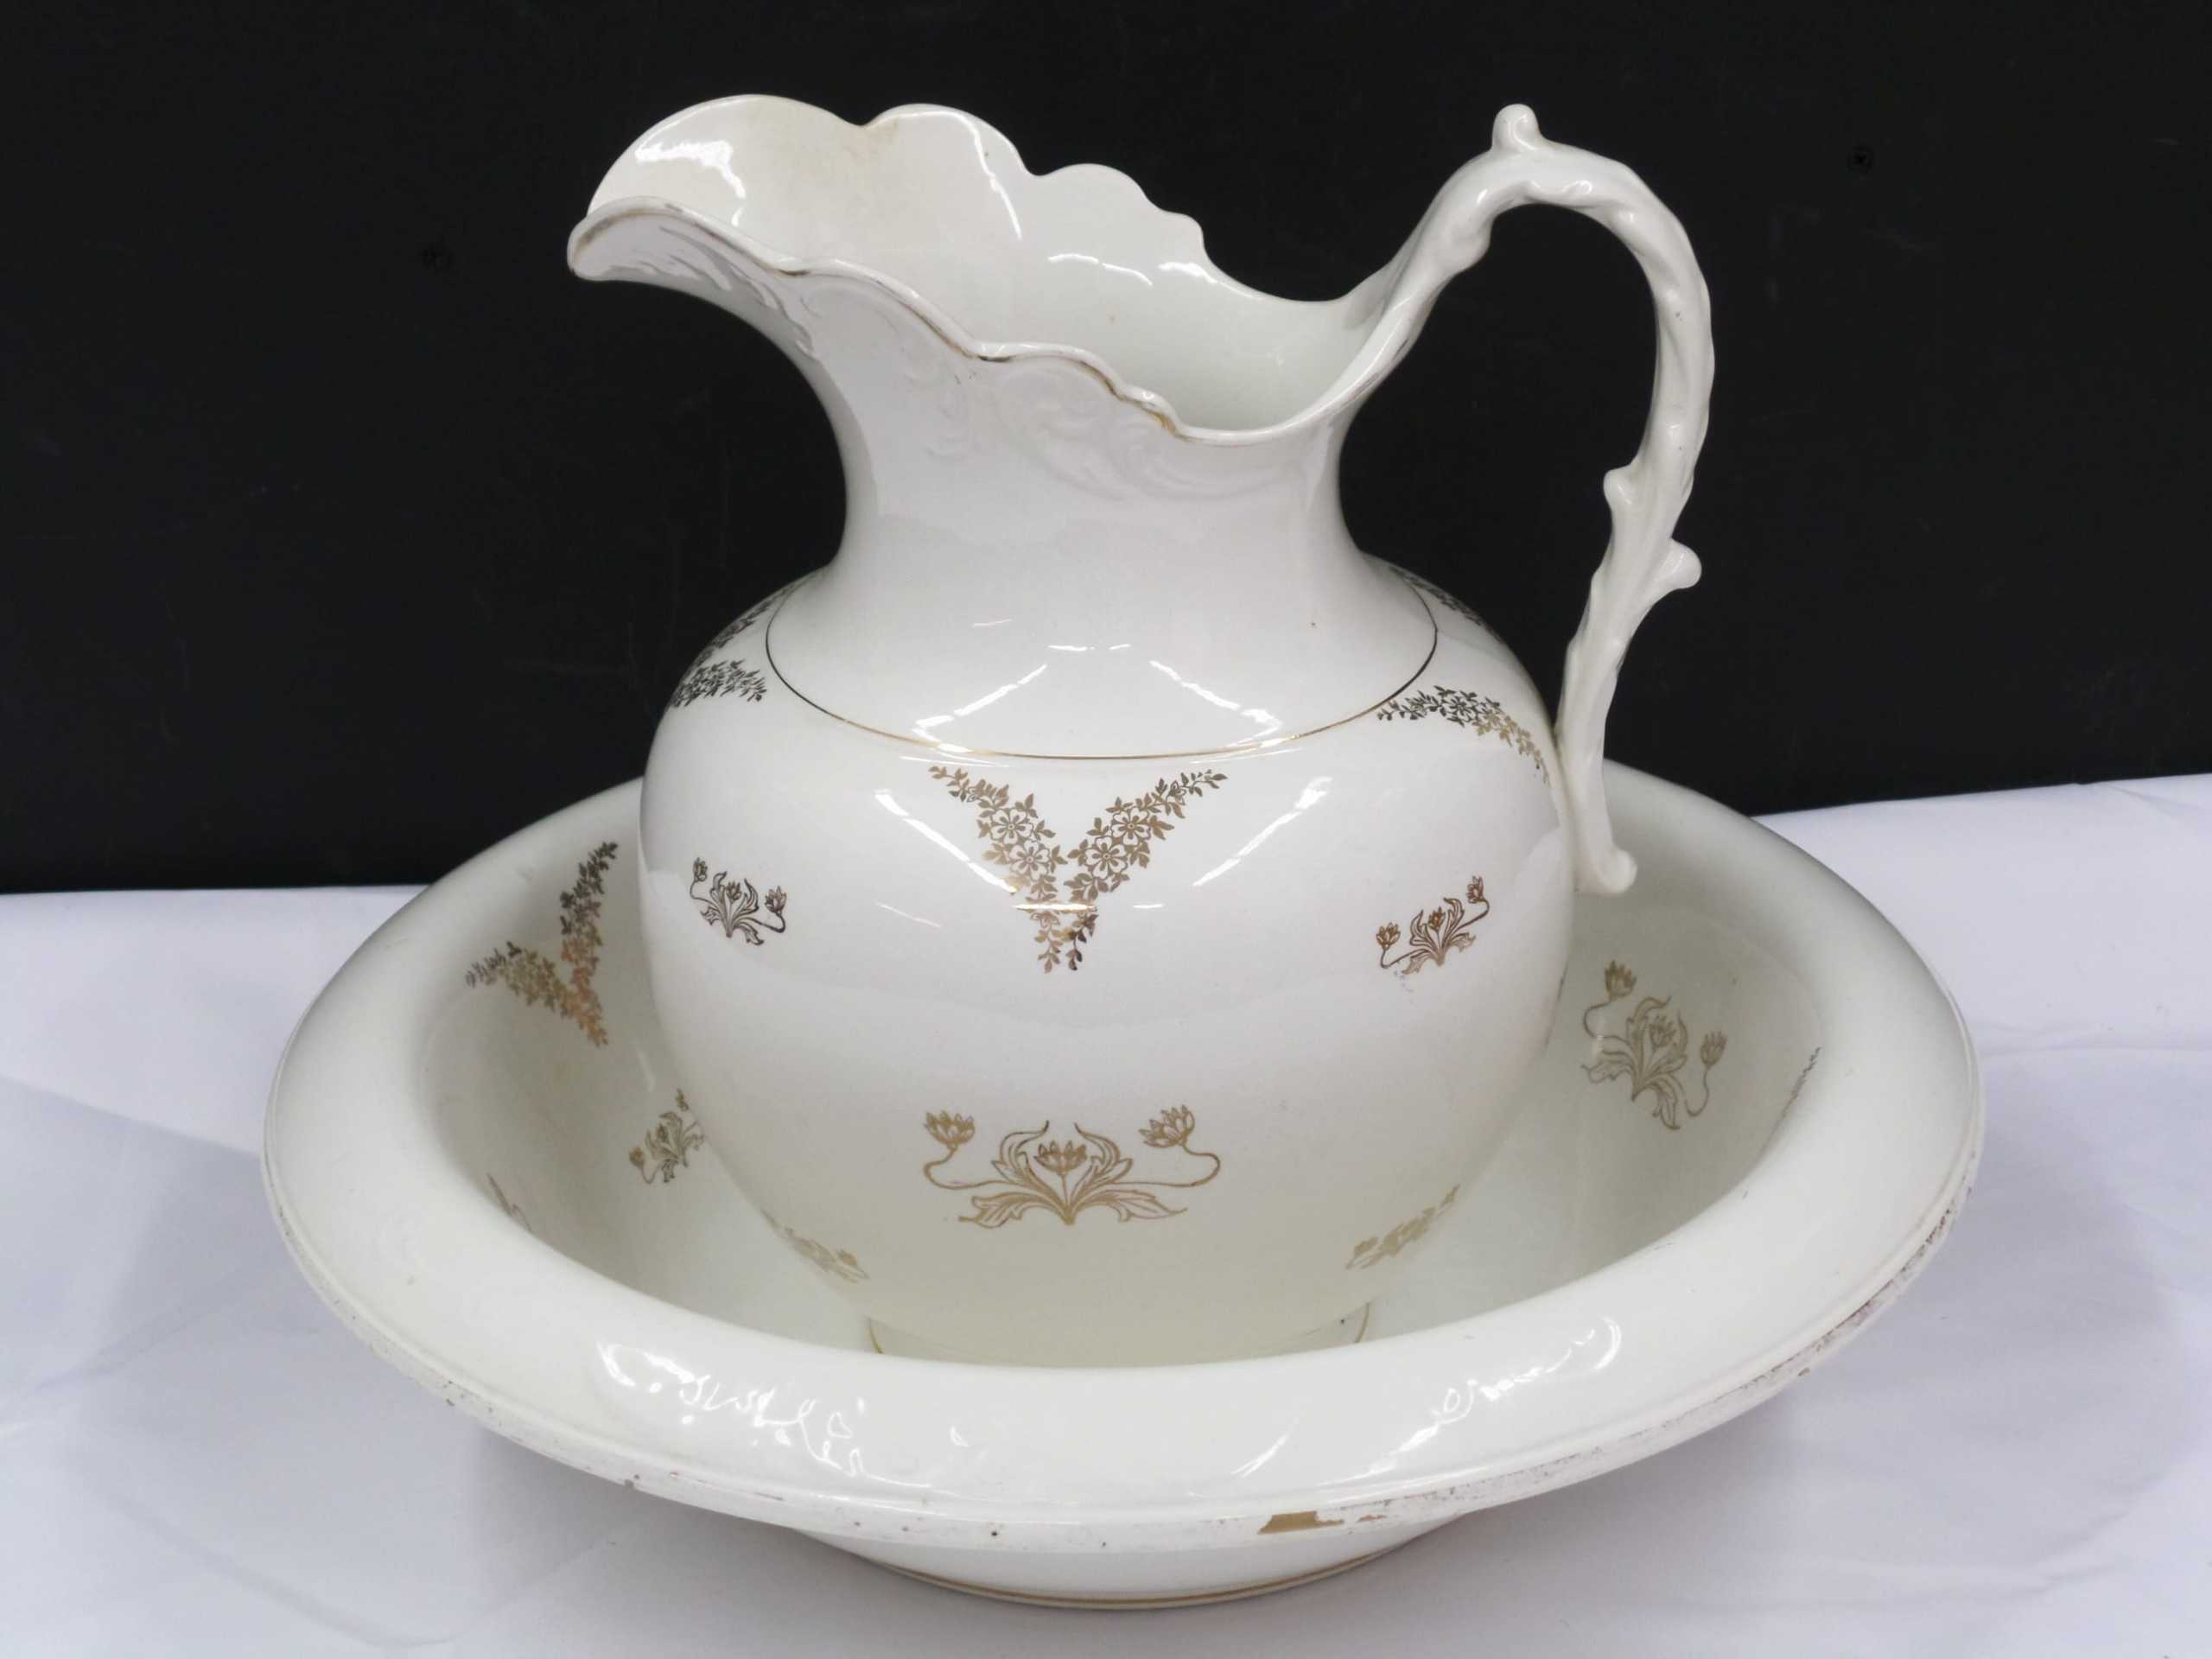 ANTIQUE PITCHER & WASH BASIN <br/> Donated by: TOM LACLAIR <br/> Valued at: $85 <br/> Buy It Now: $15